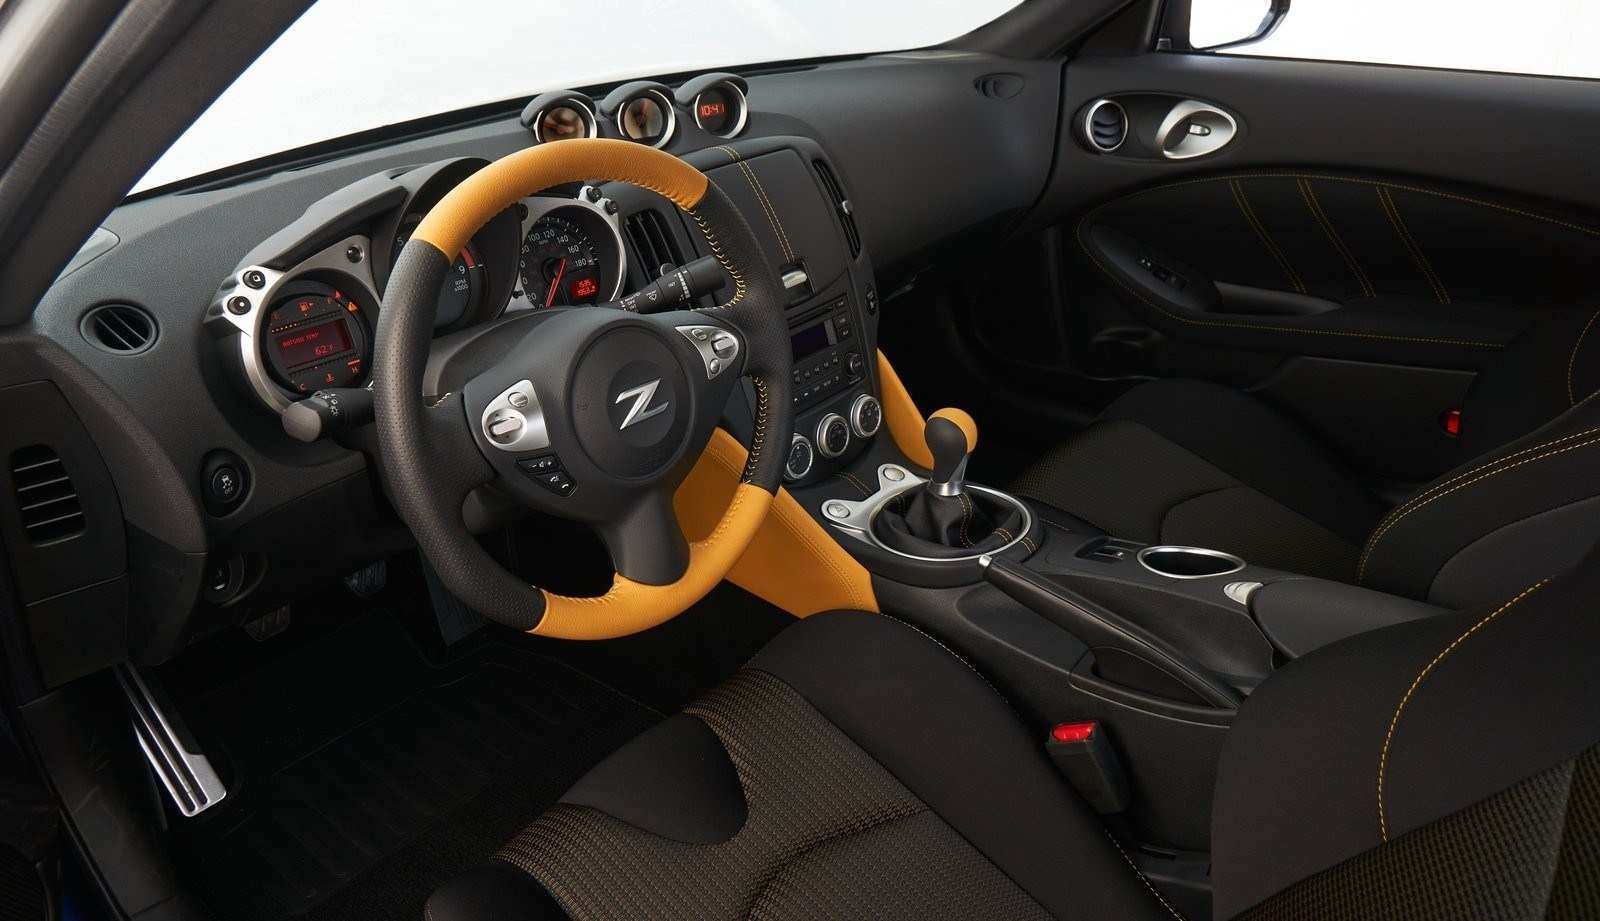 29 New 2019 Nissan Z35 Images